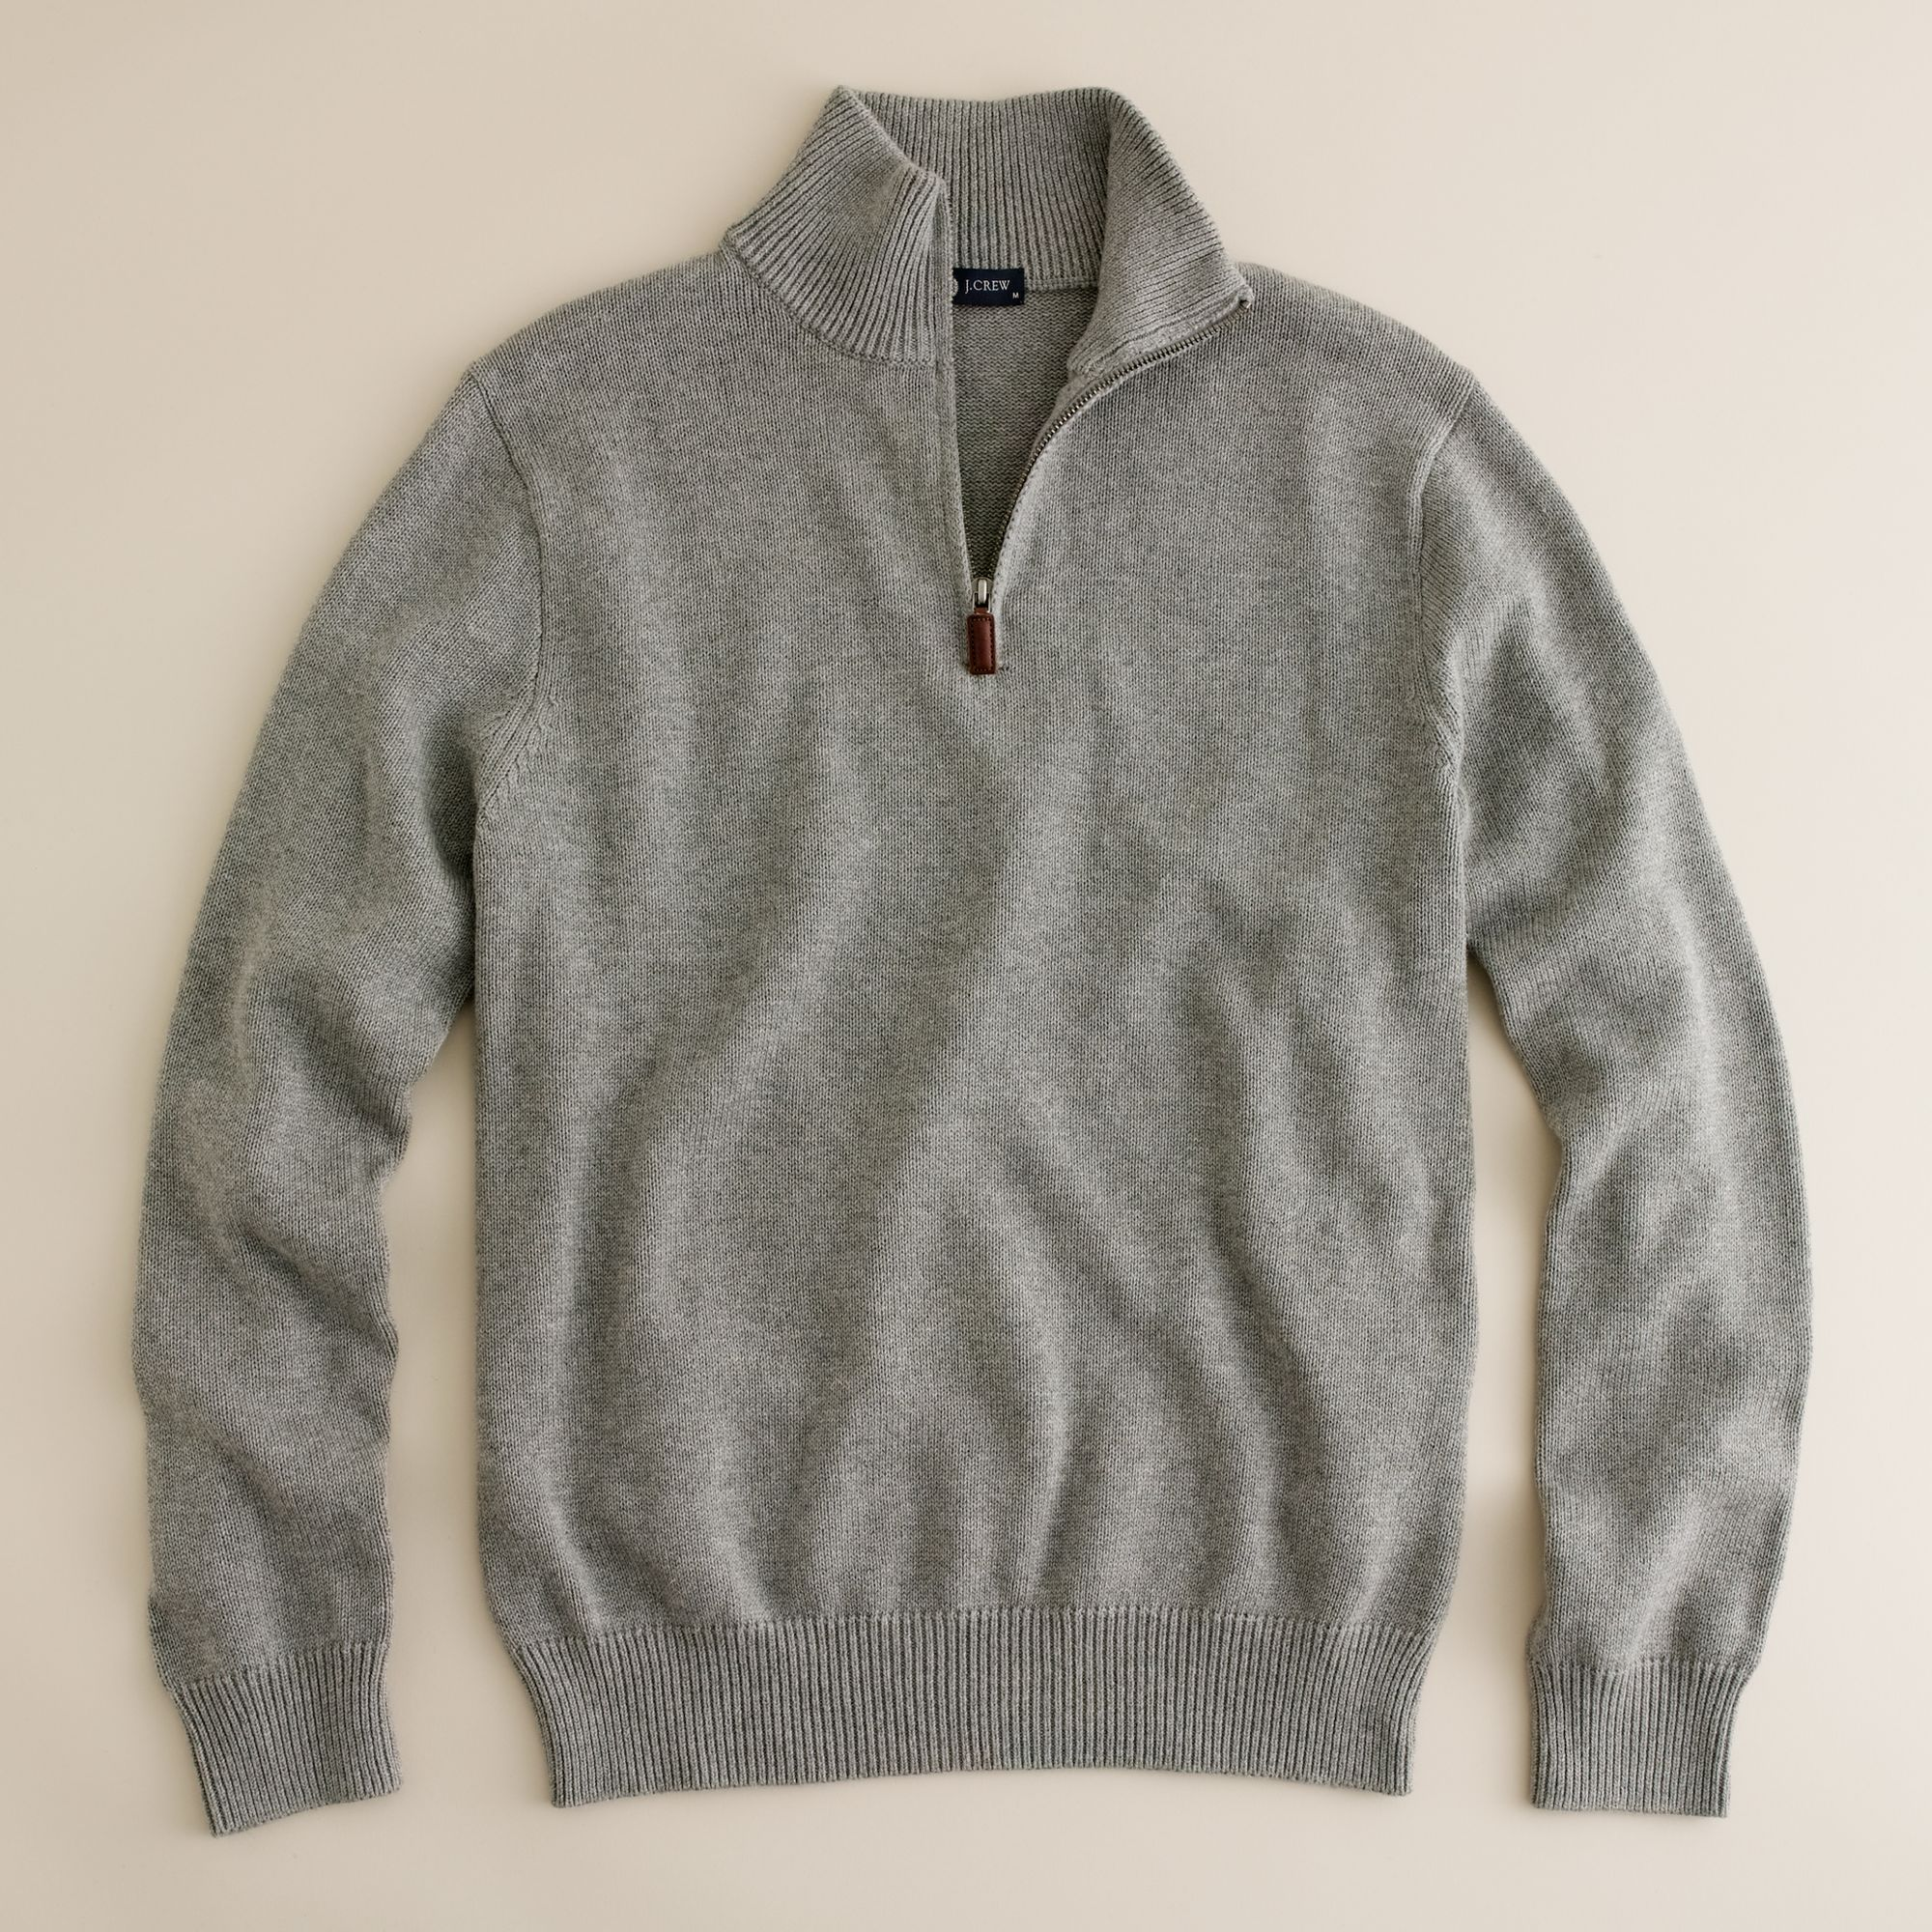 J.crew Tall Cotton-cashmere Half-zip Sweater in Gray for ...